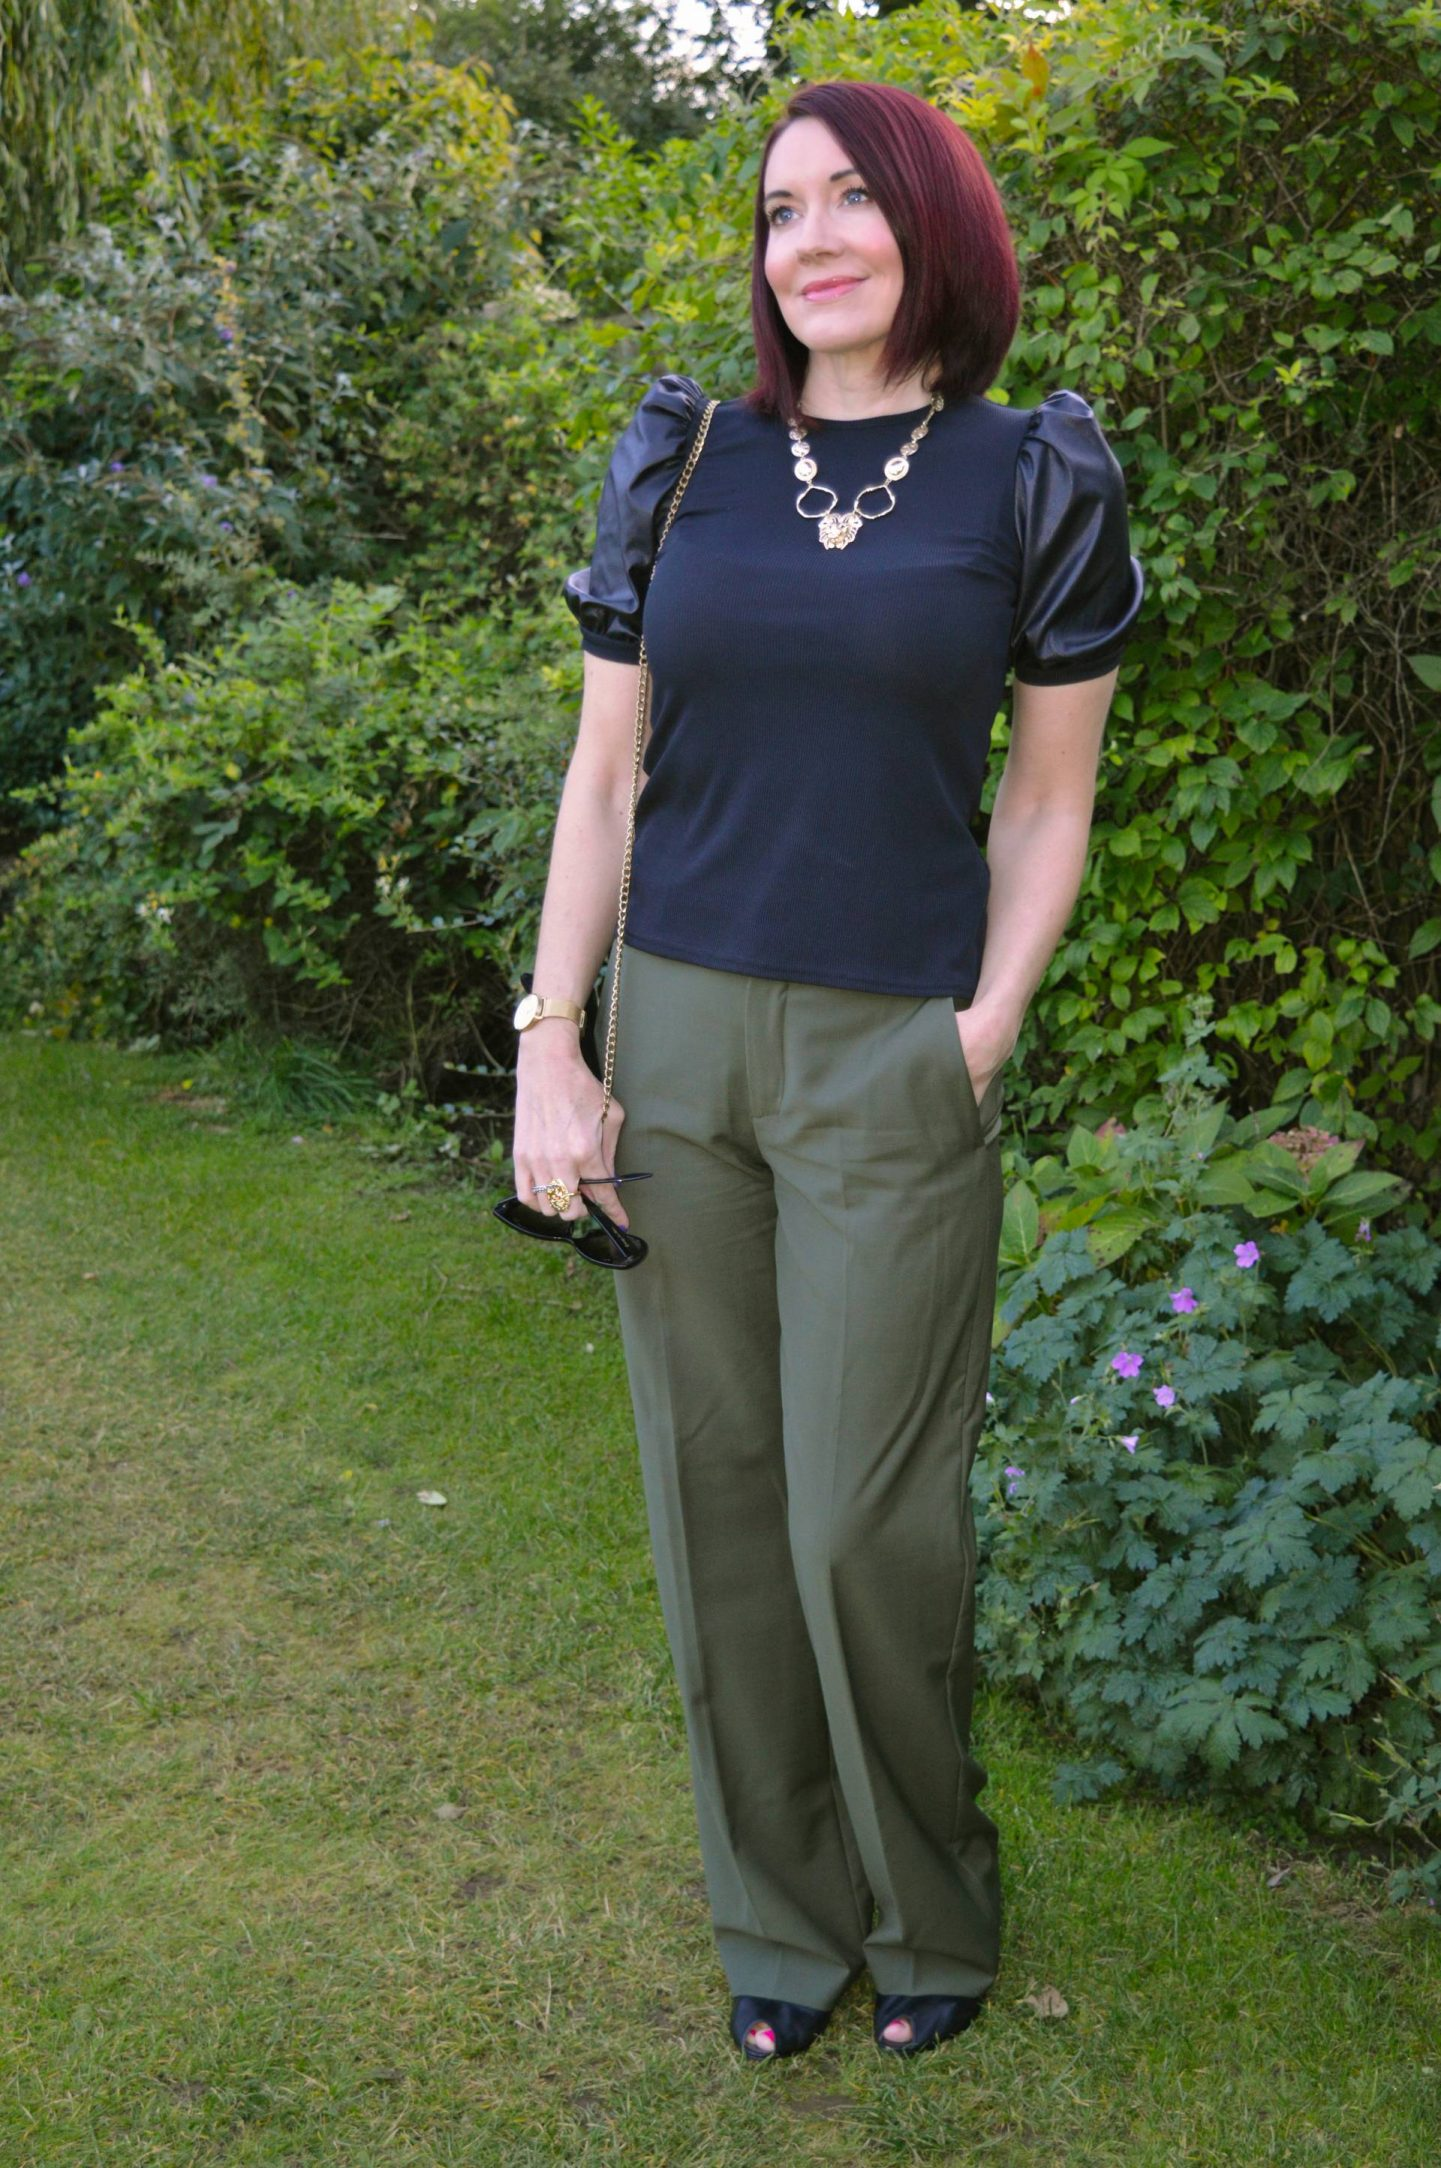 New Look Black Faux Leather Puff Sleeves top and Khaki Trousers,